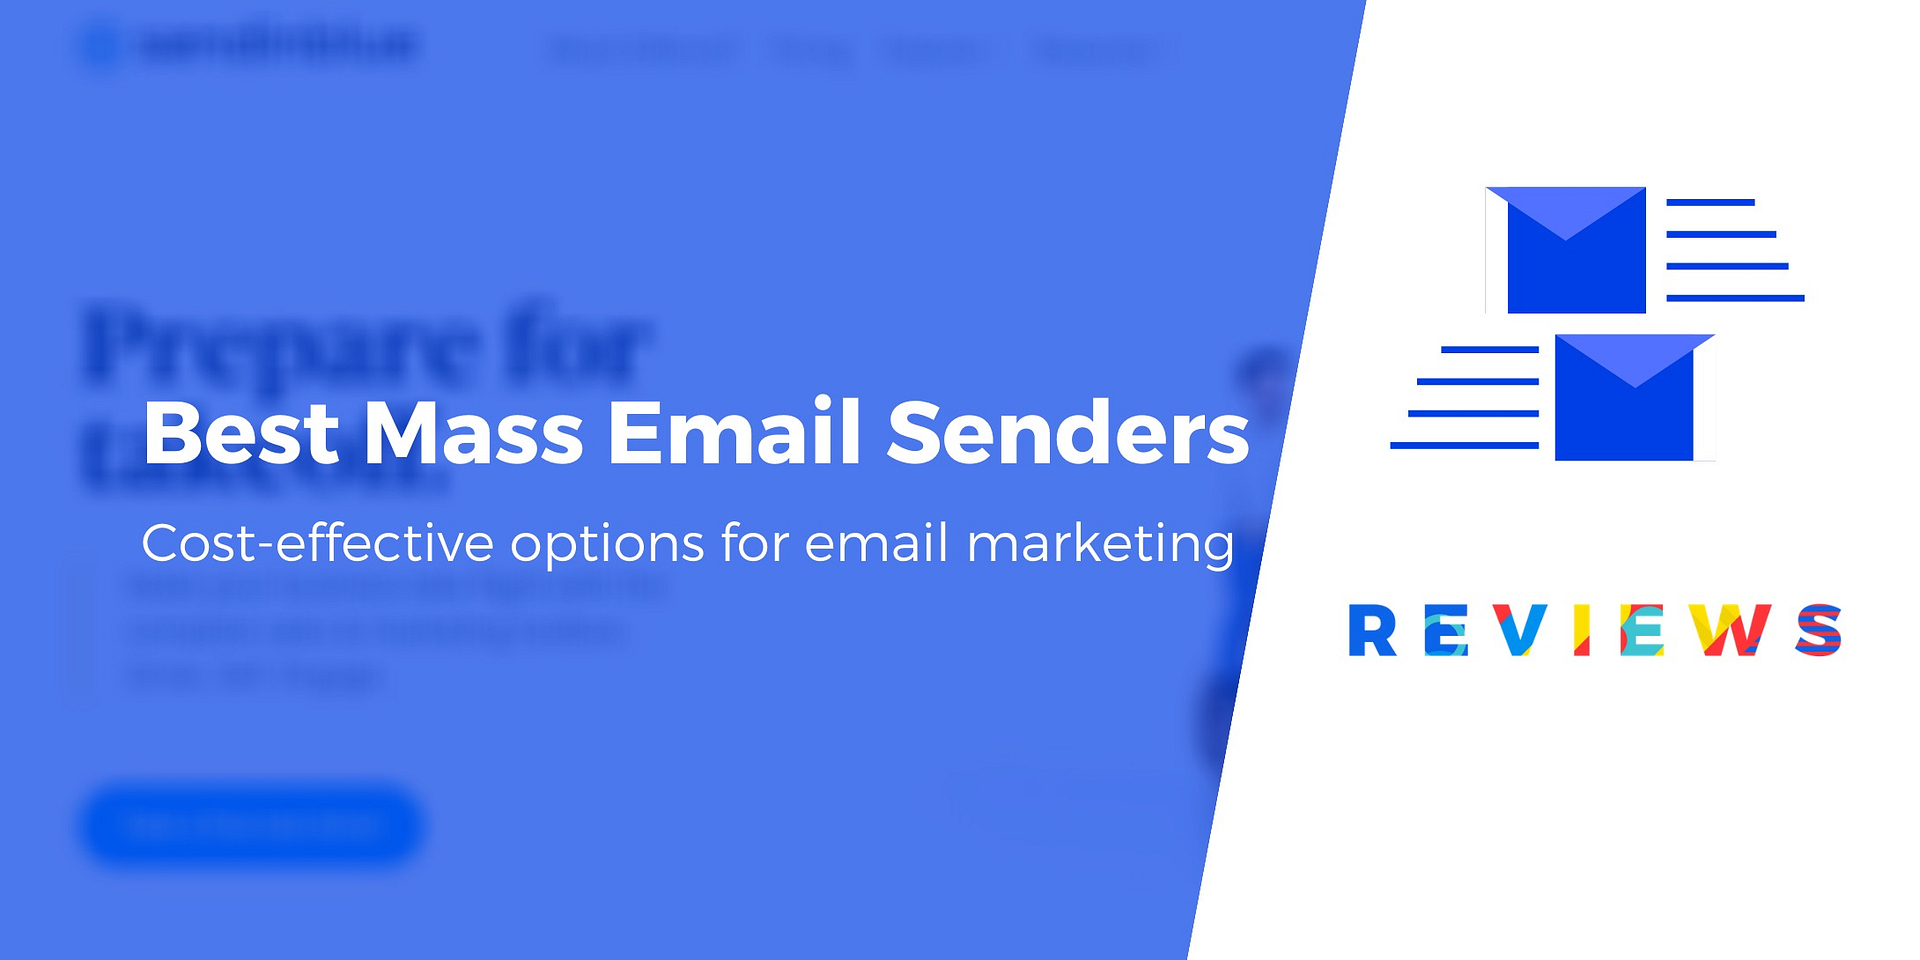 5 Best Mass Email Senders For Bulk Email Blasts 2020